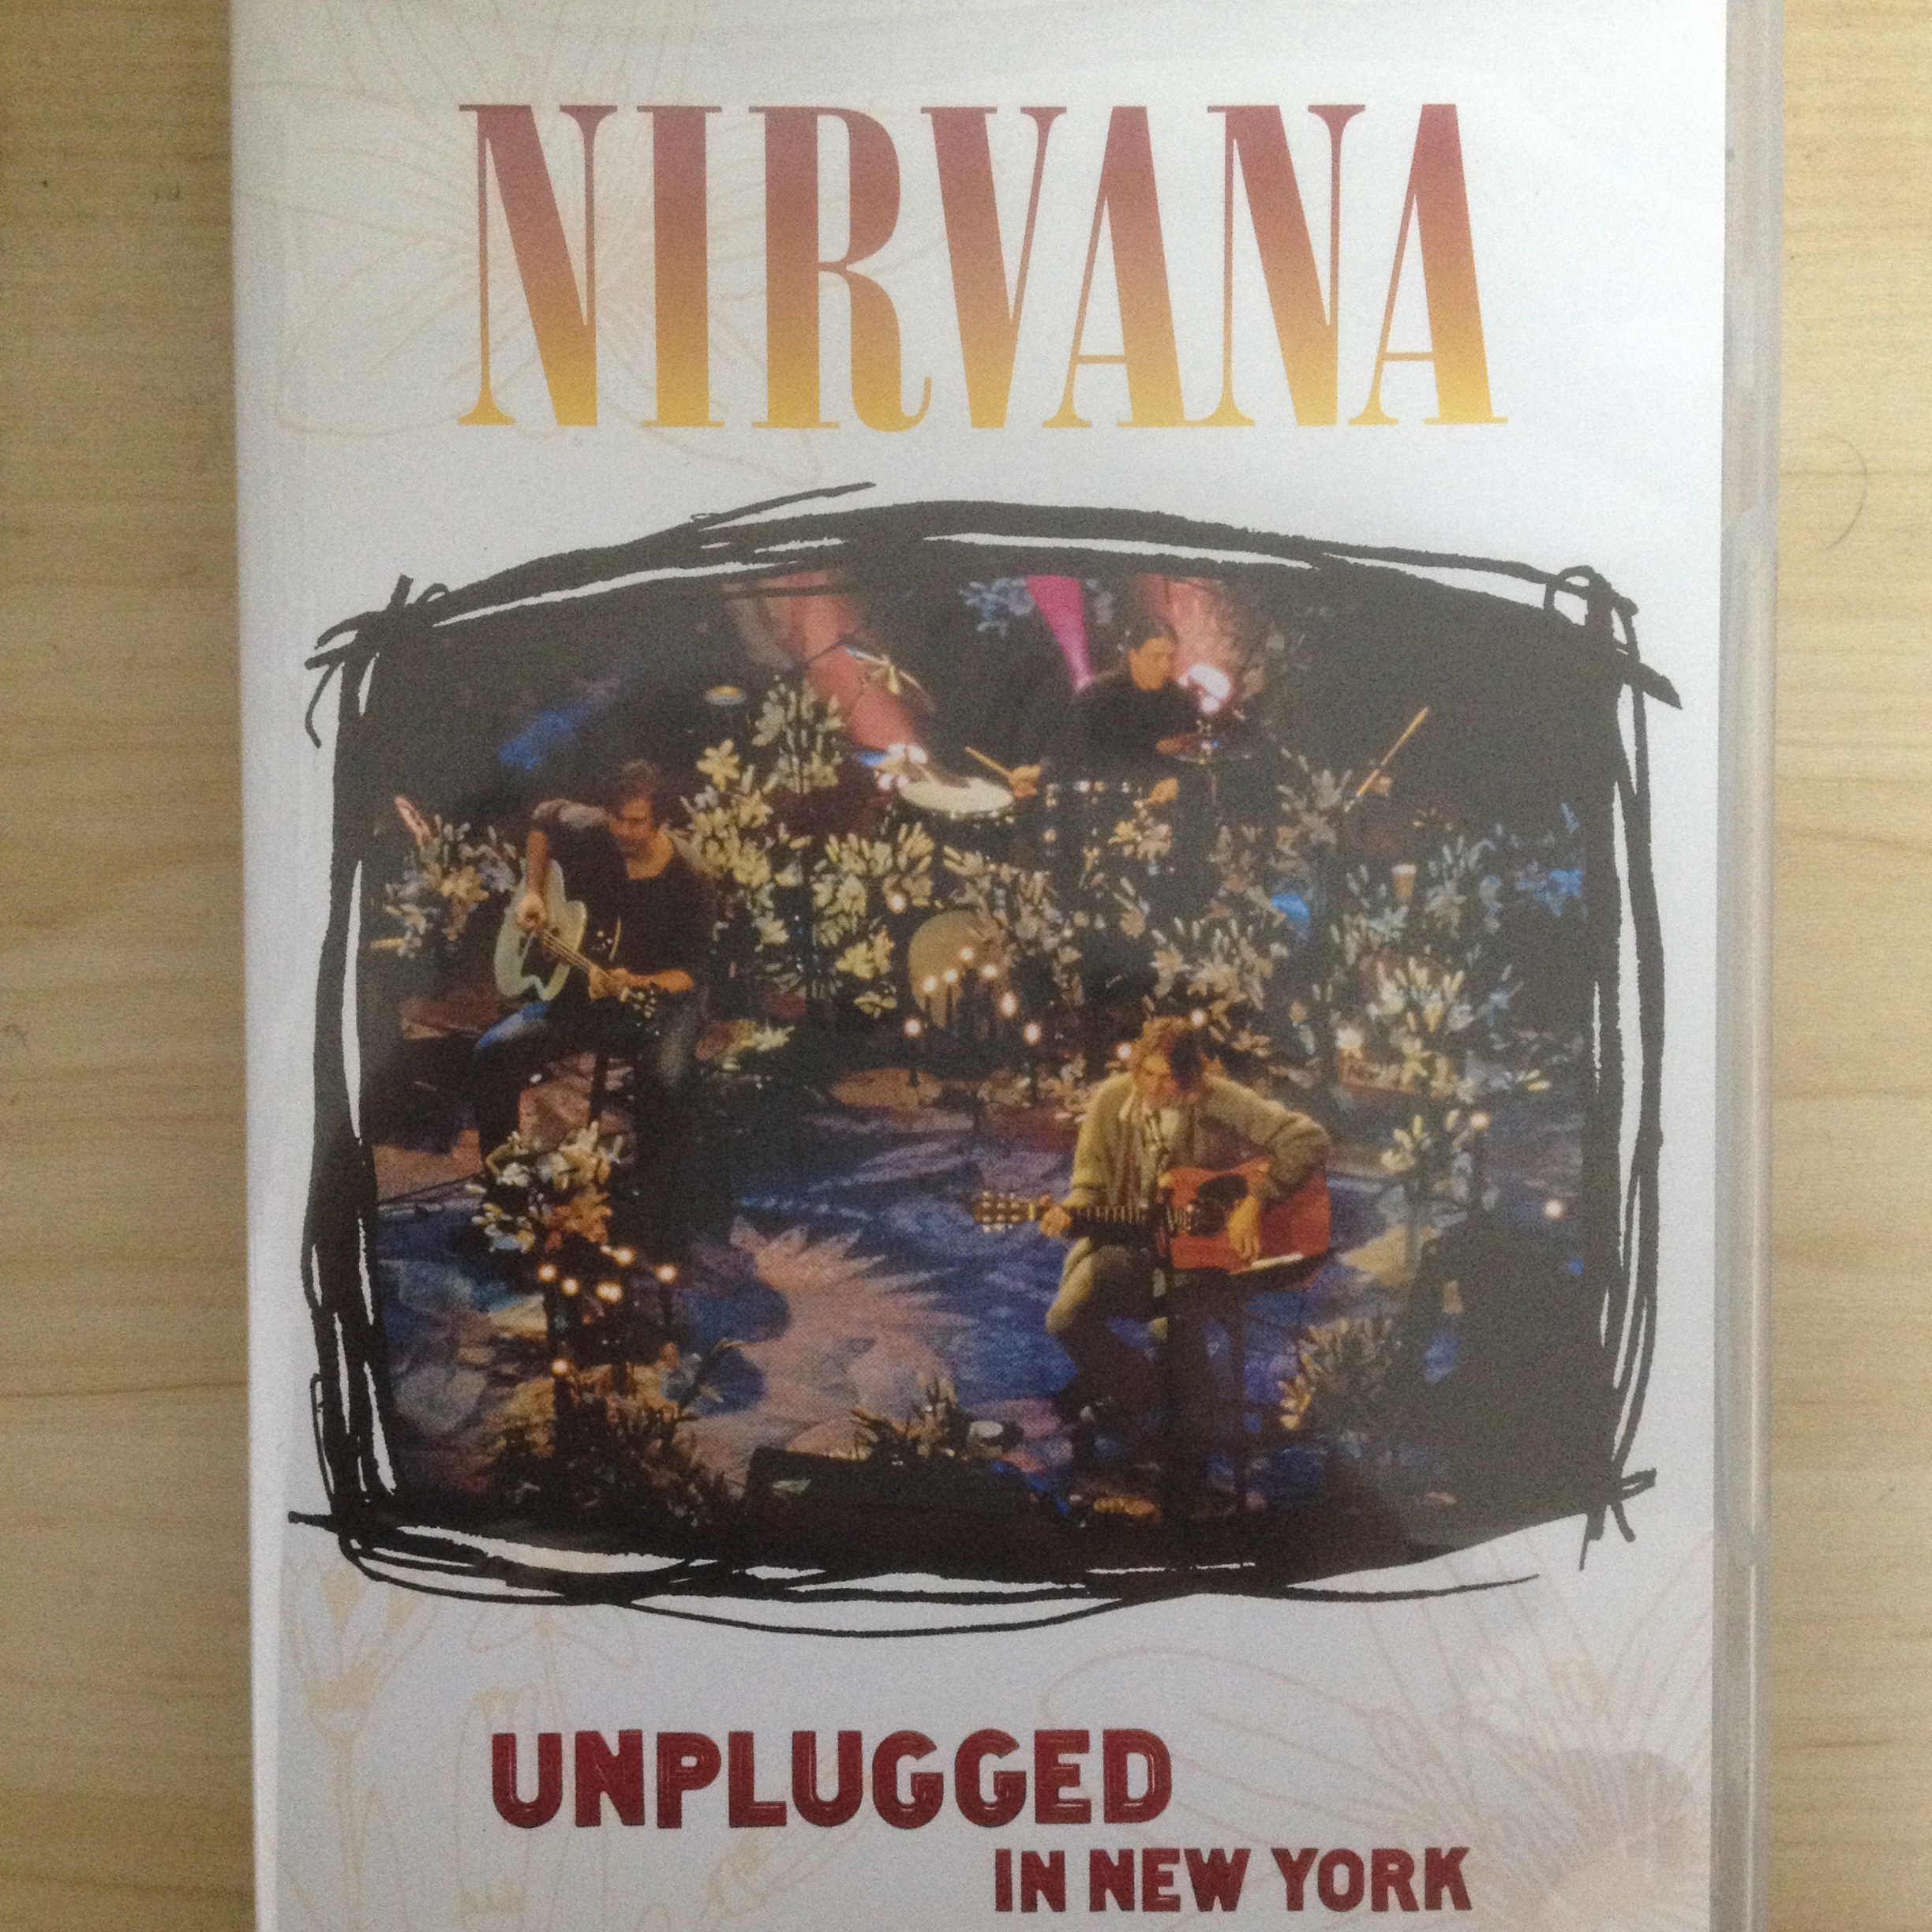 NIRVANA 「THE MAN WHO SOLD THE WORLD」「WHERE DID YOU